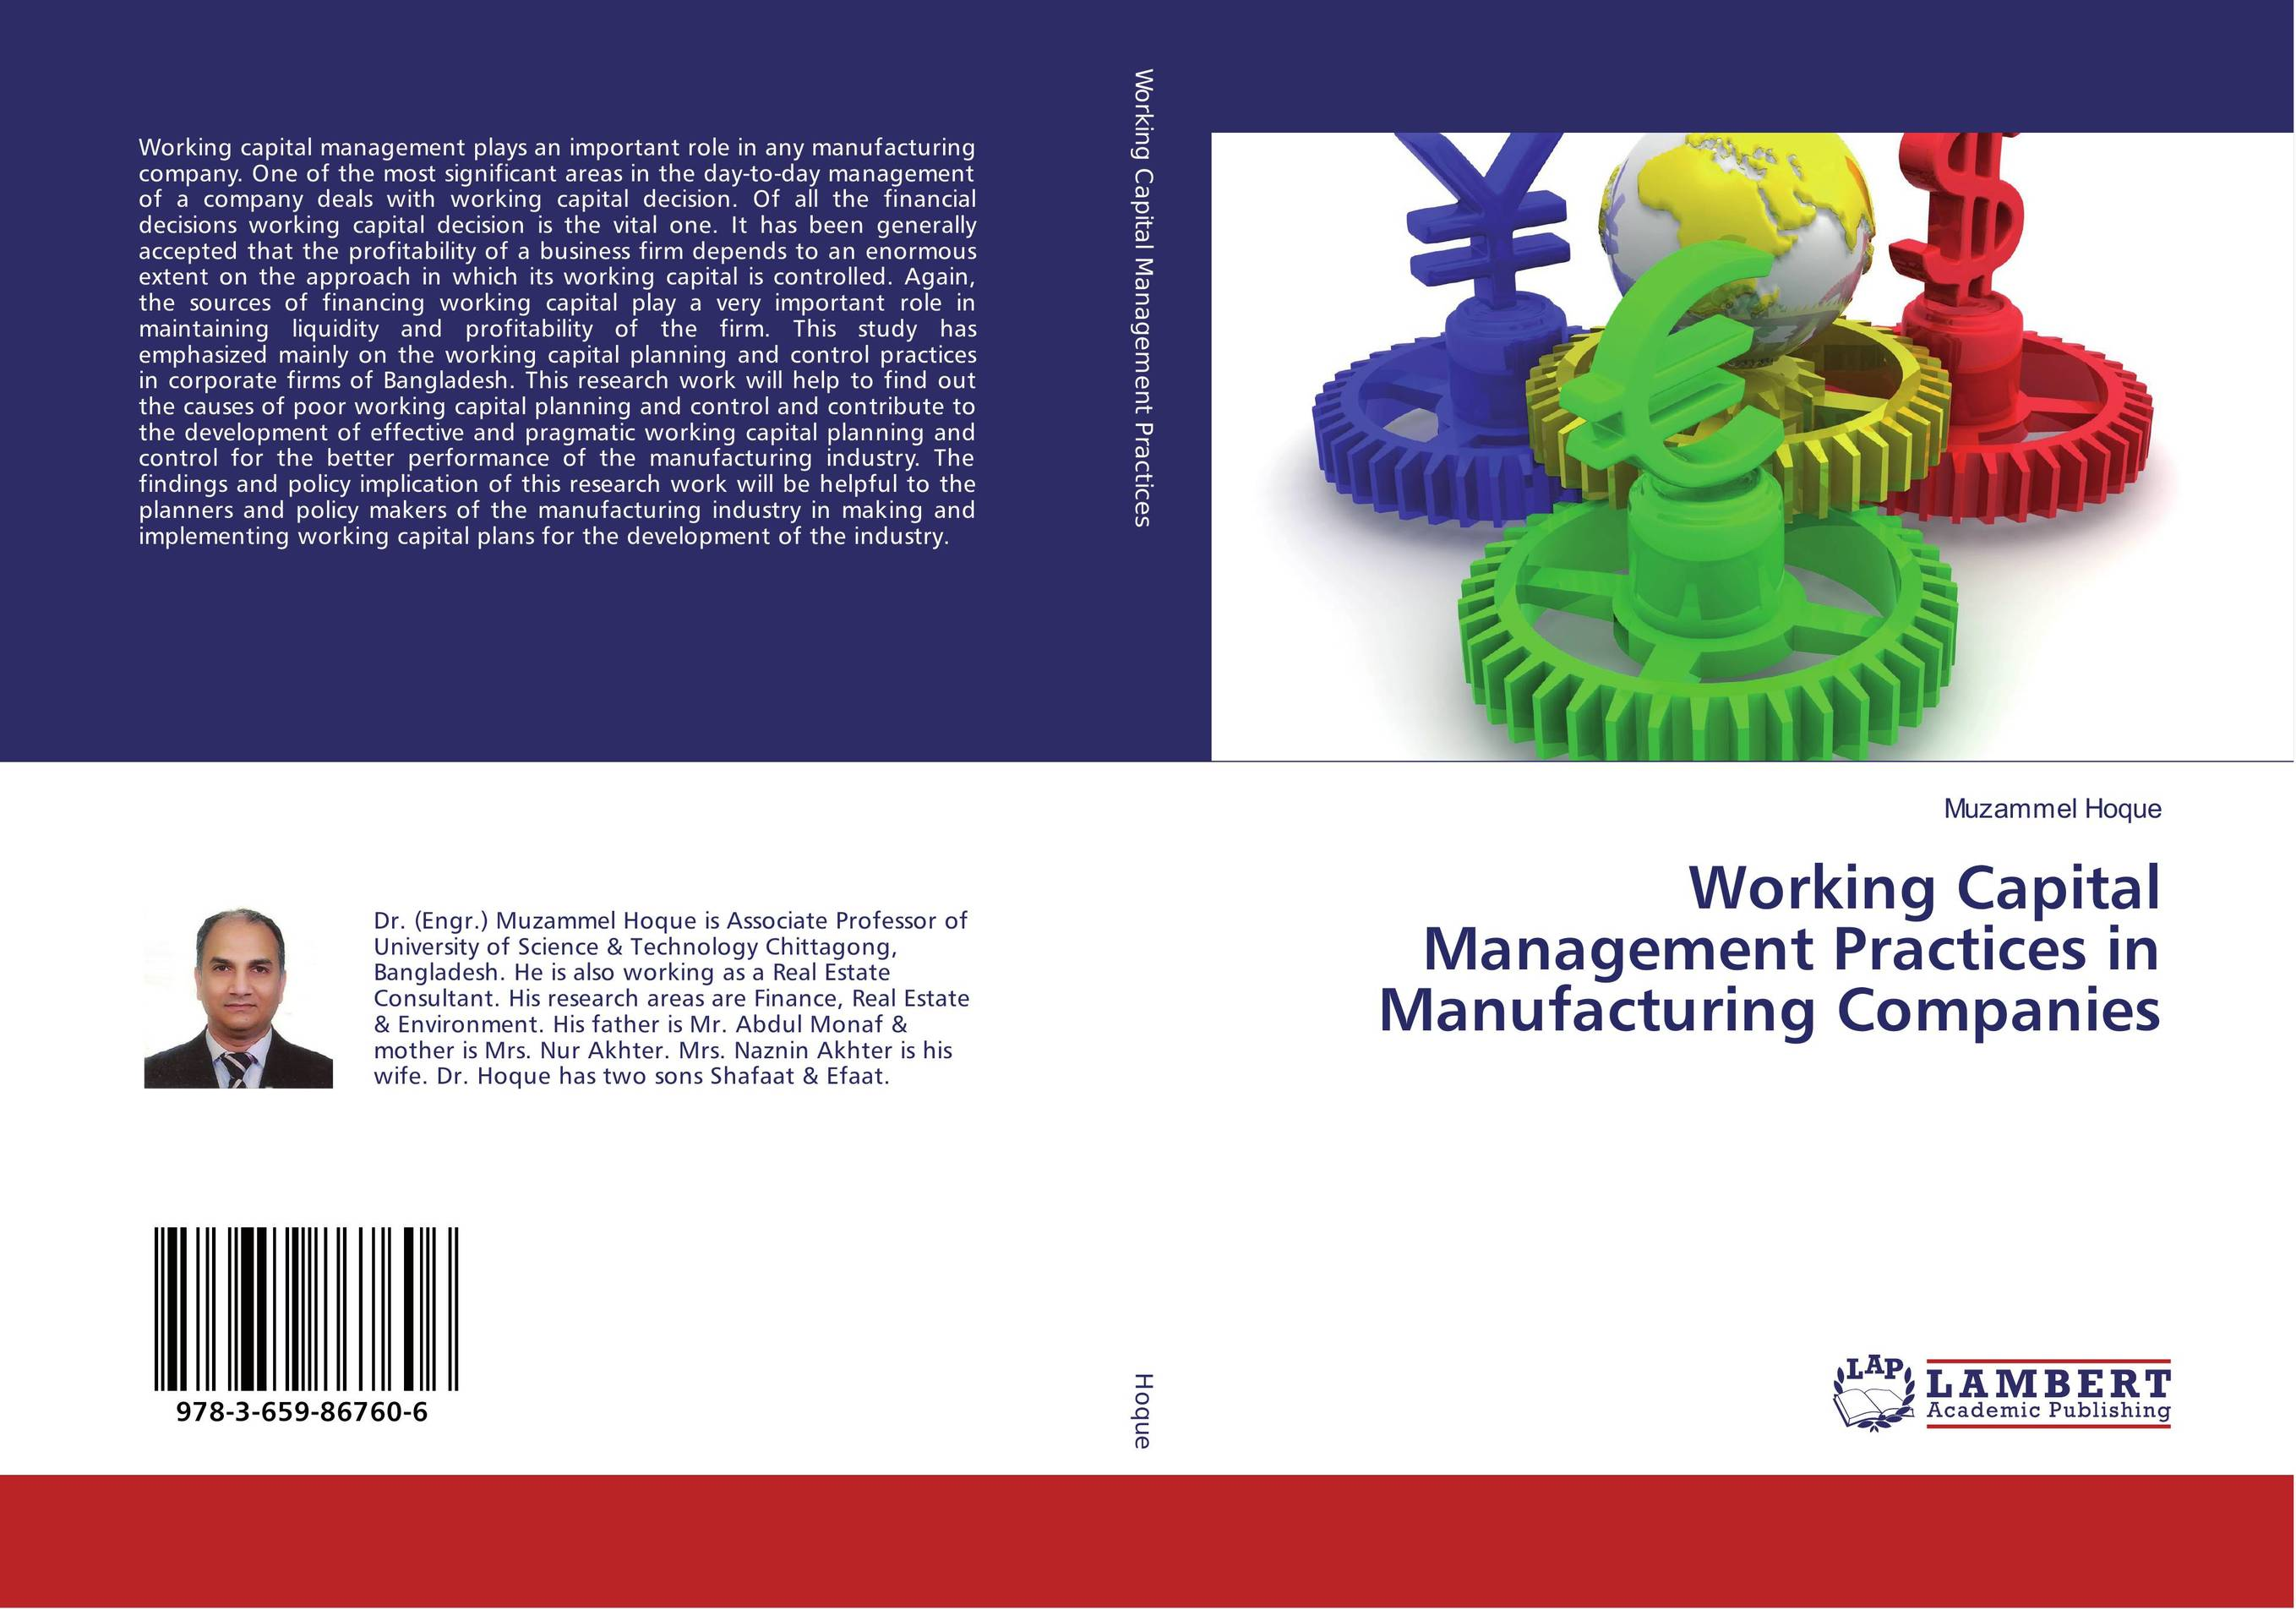 Working Capital Management Practices in Manufacturing Companies цена